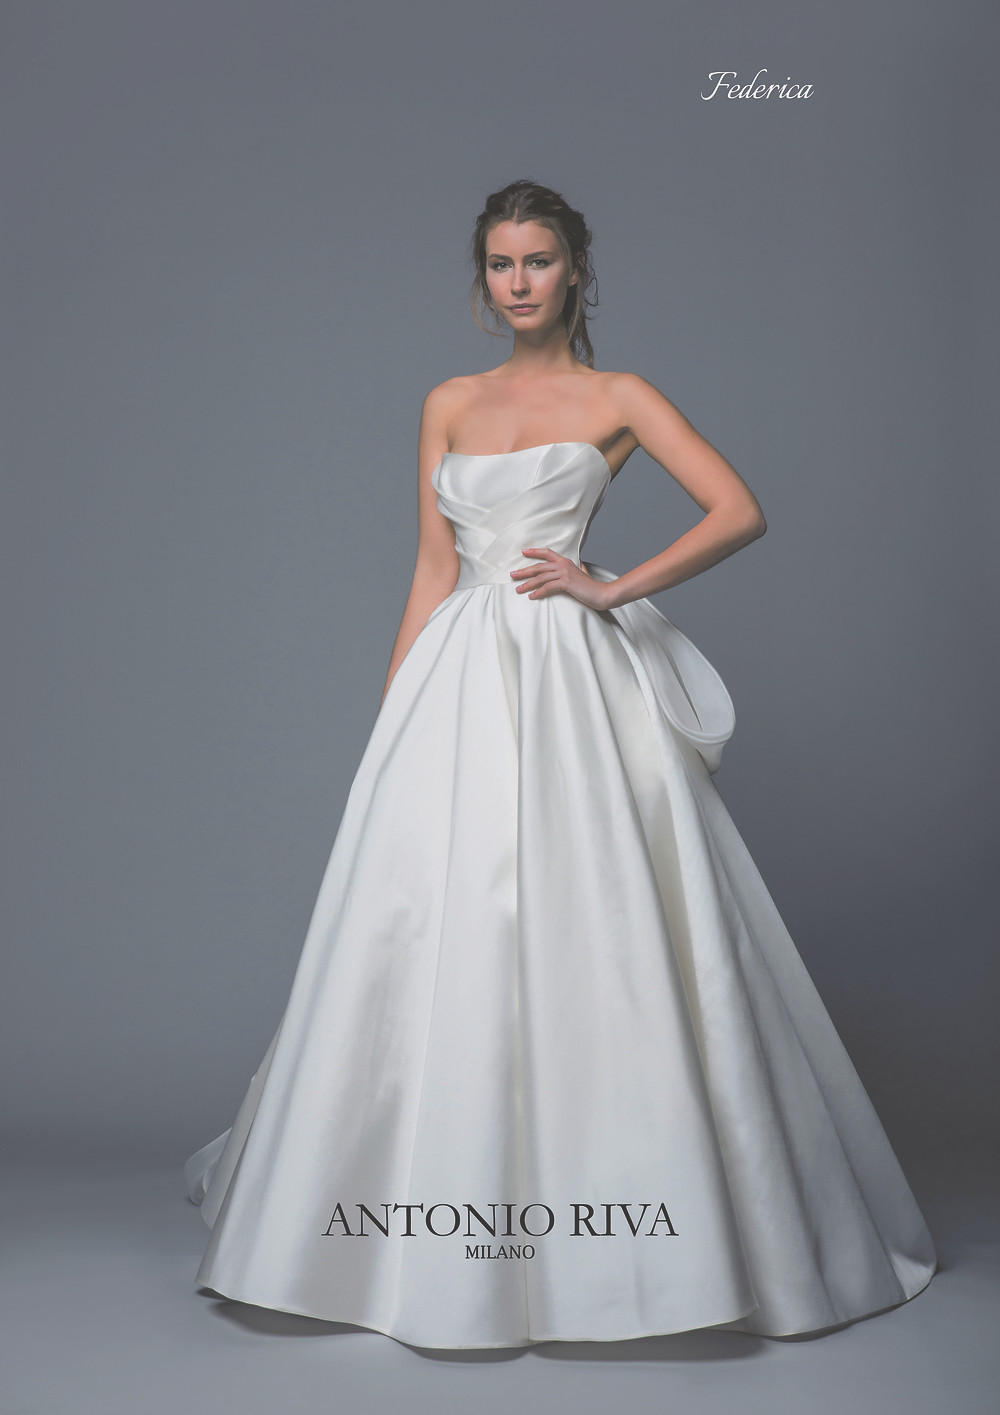 An Antonio Riva 2020 simple strapless silk ball gown wedding dress